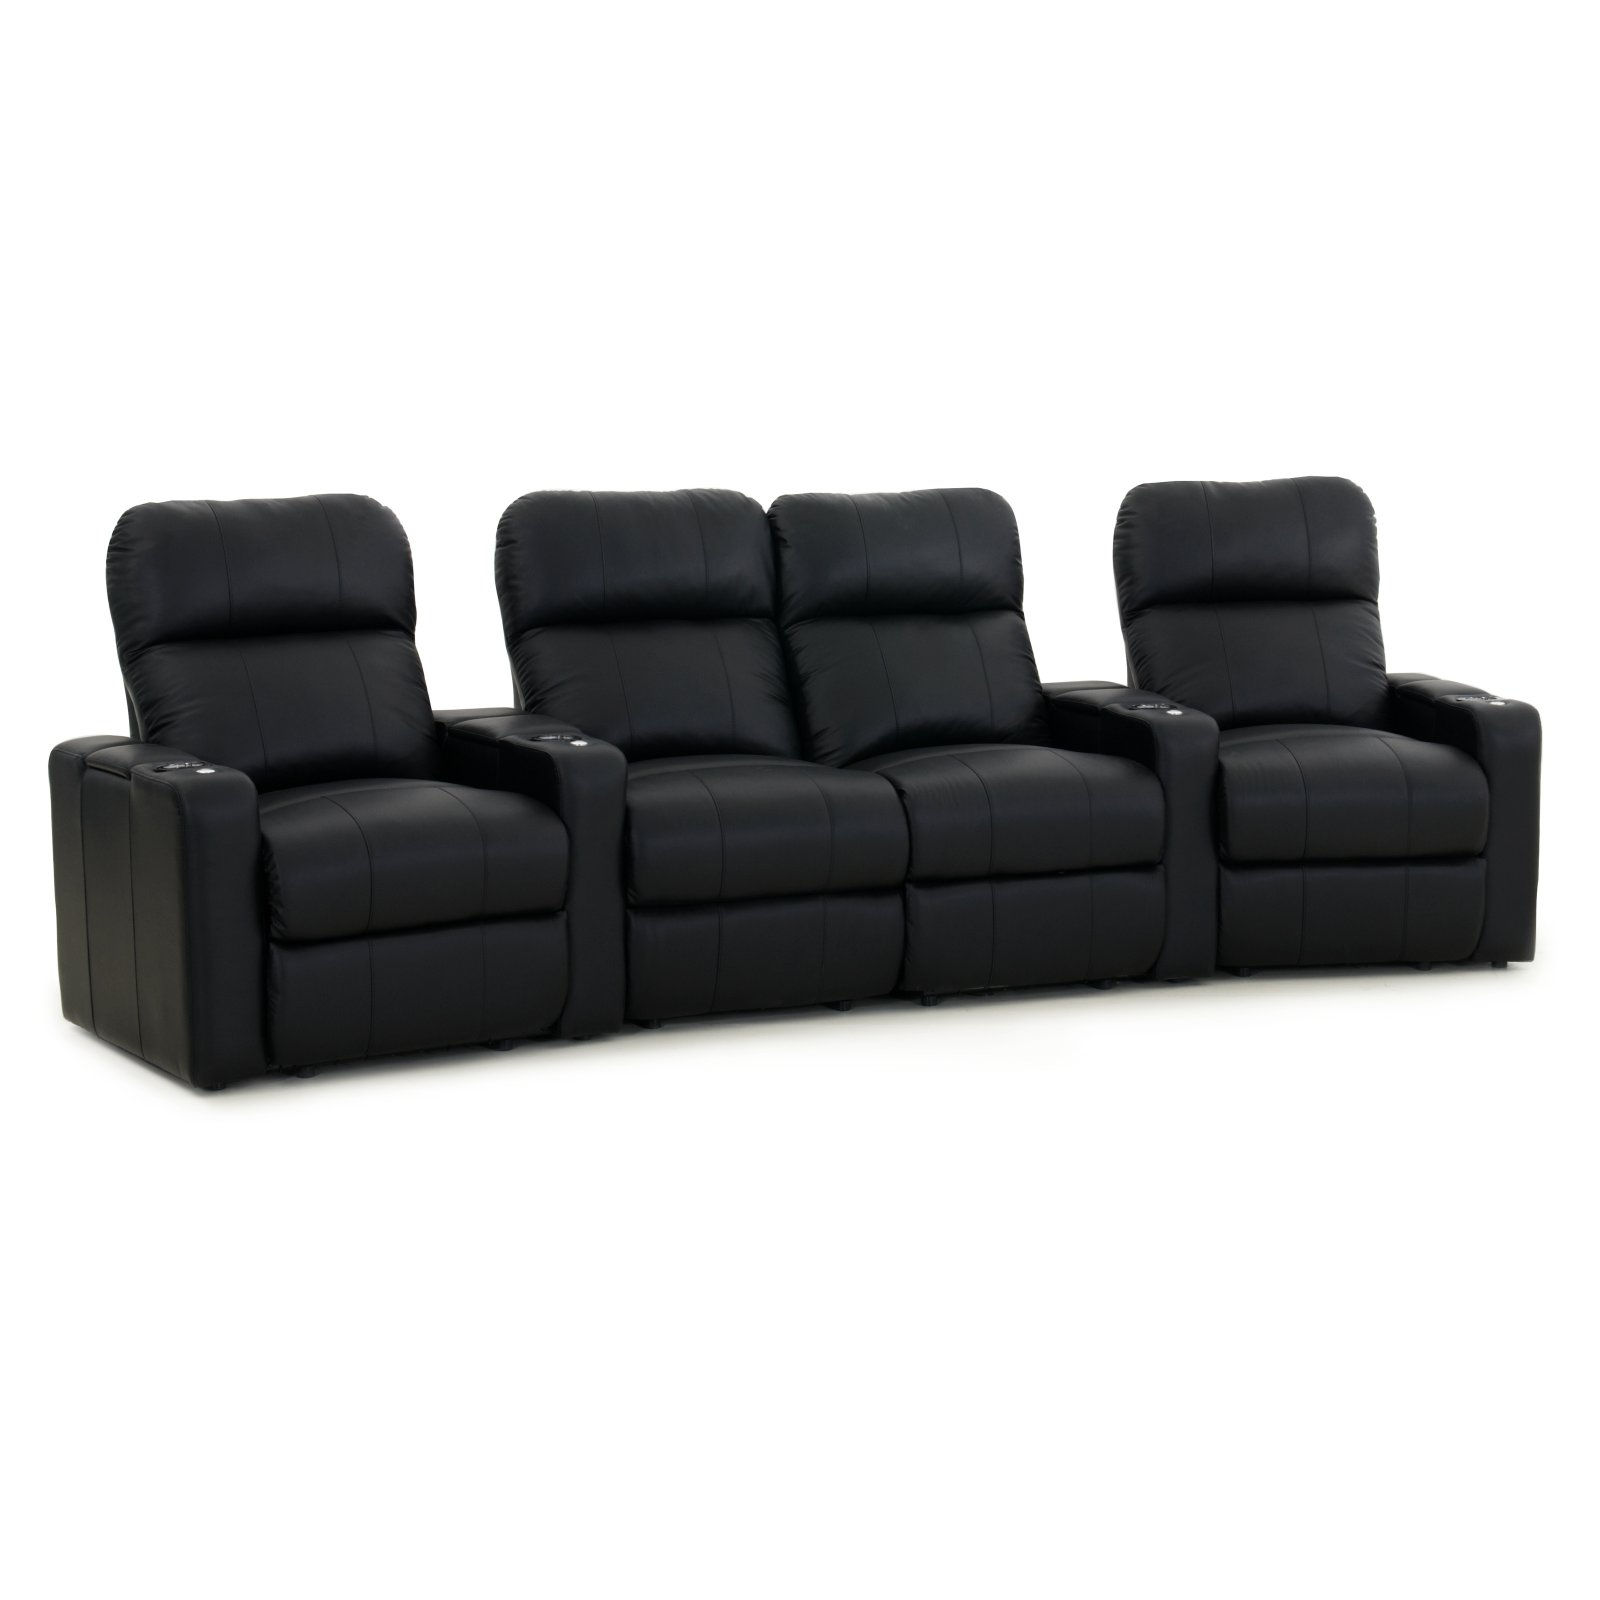 Octane Turbo XL700 4 Seater Middle Loveseat Curved Power ...